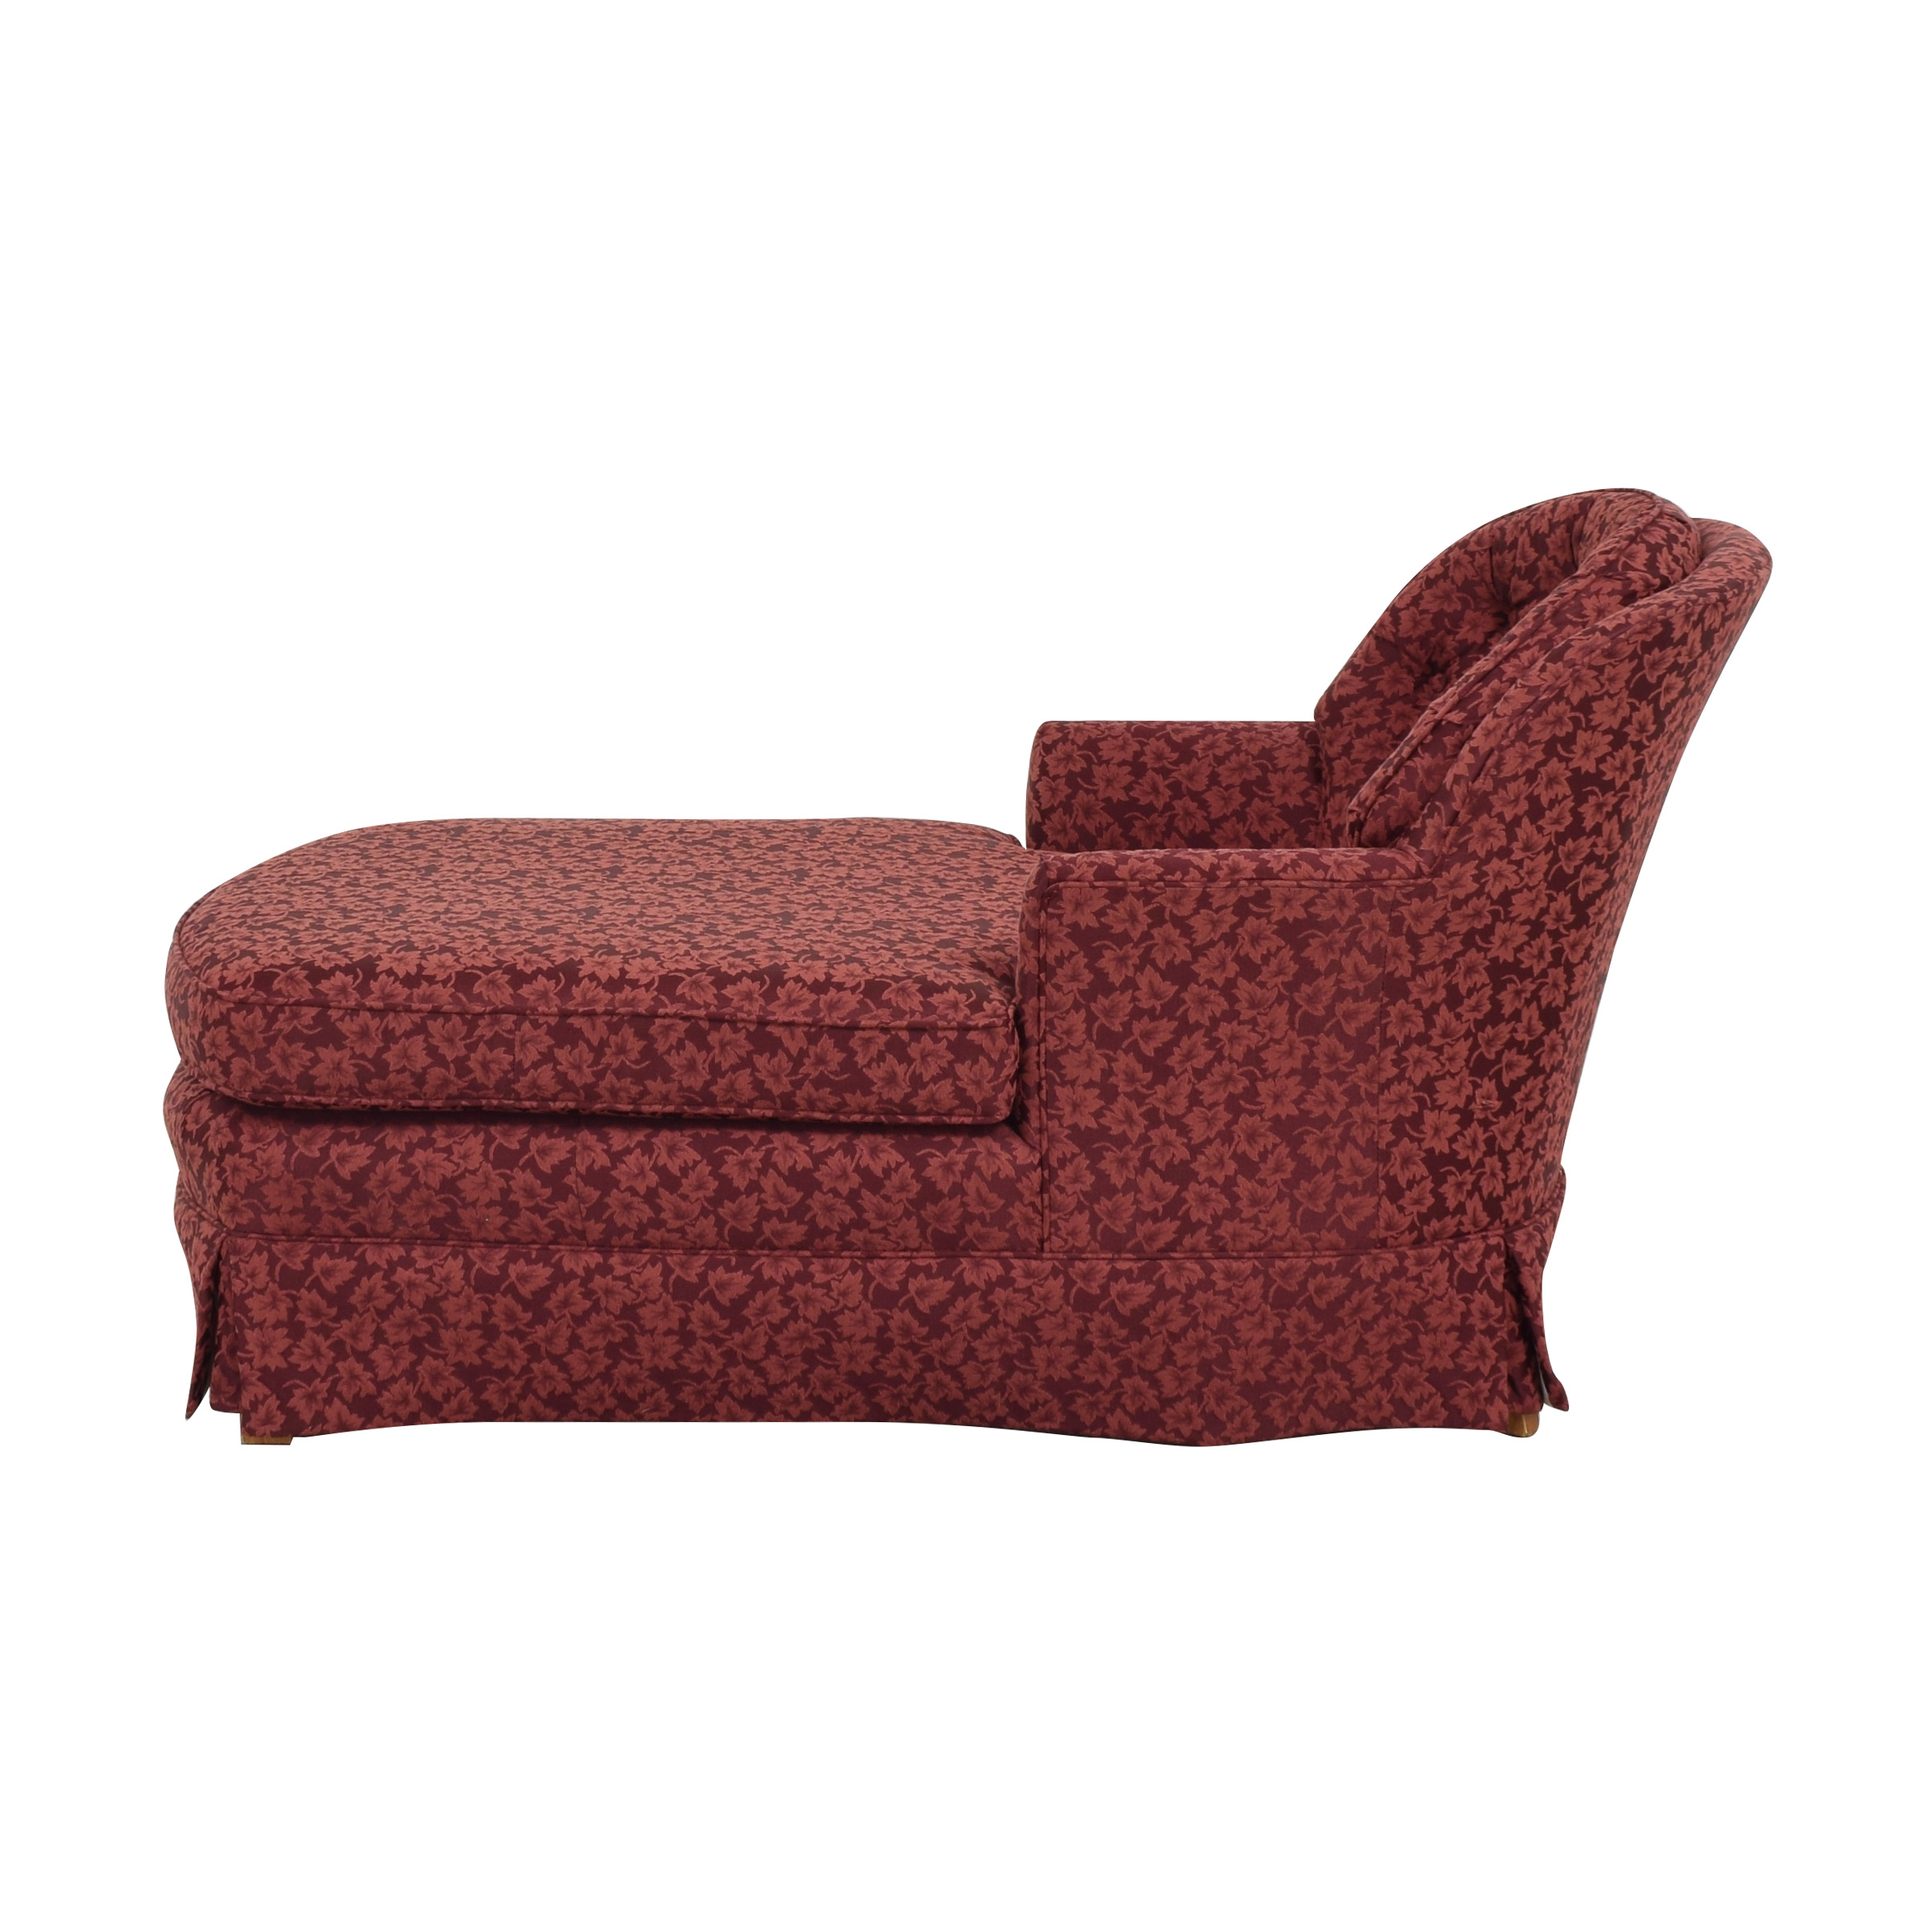 Patterned Upholstered Chaise